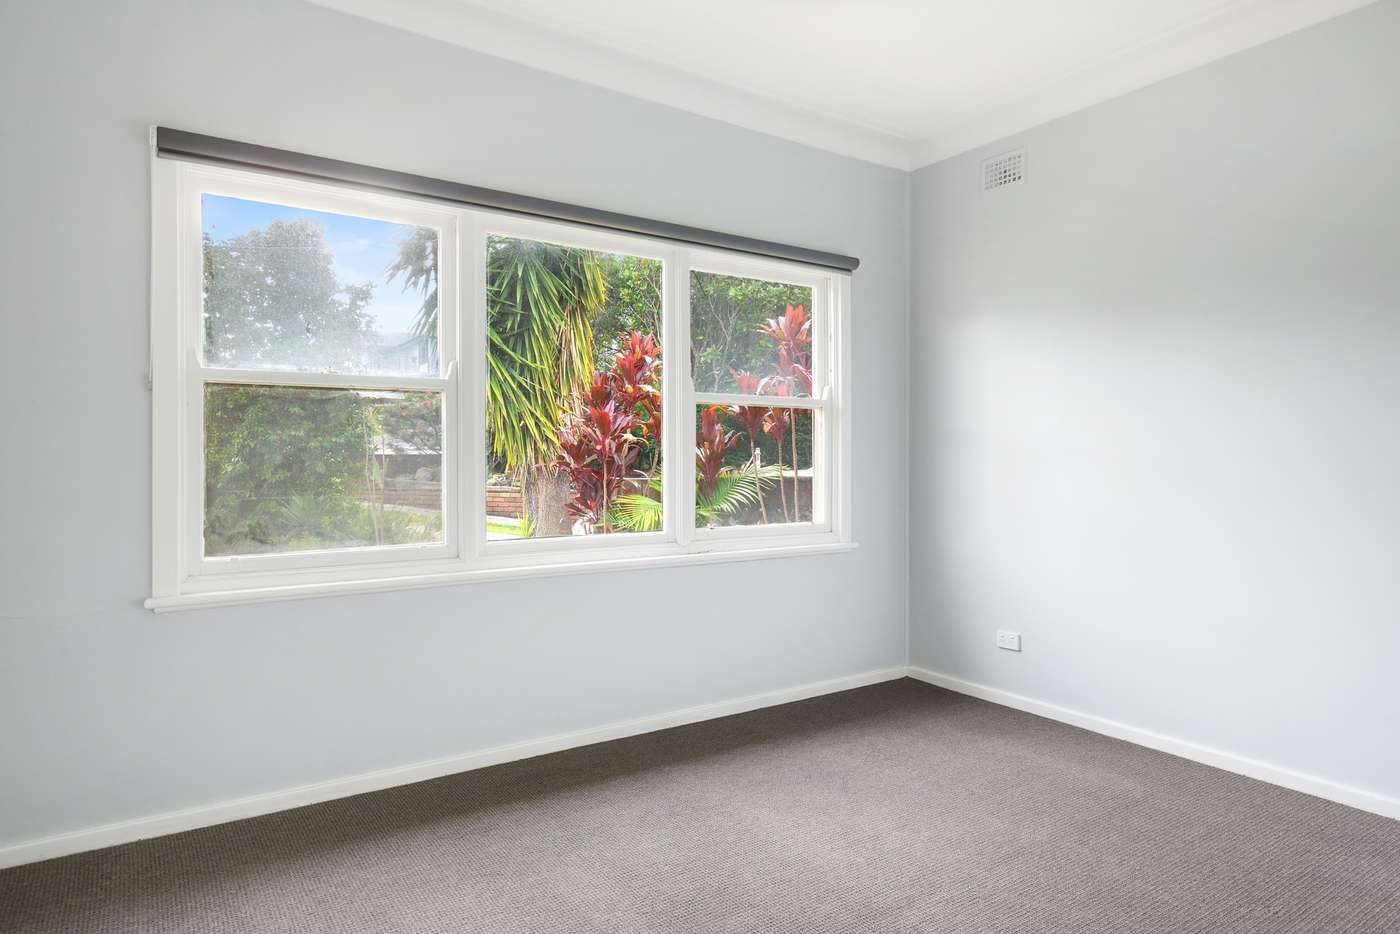 Sixth view of Homely house listing, 2 Ridley Street, Charlestown NSW 2290